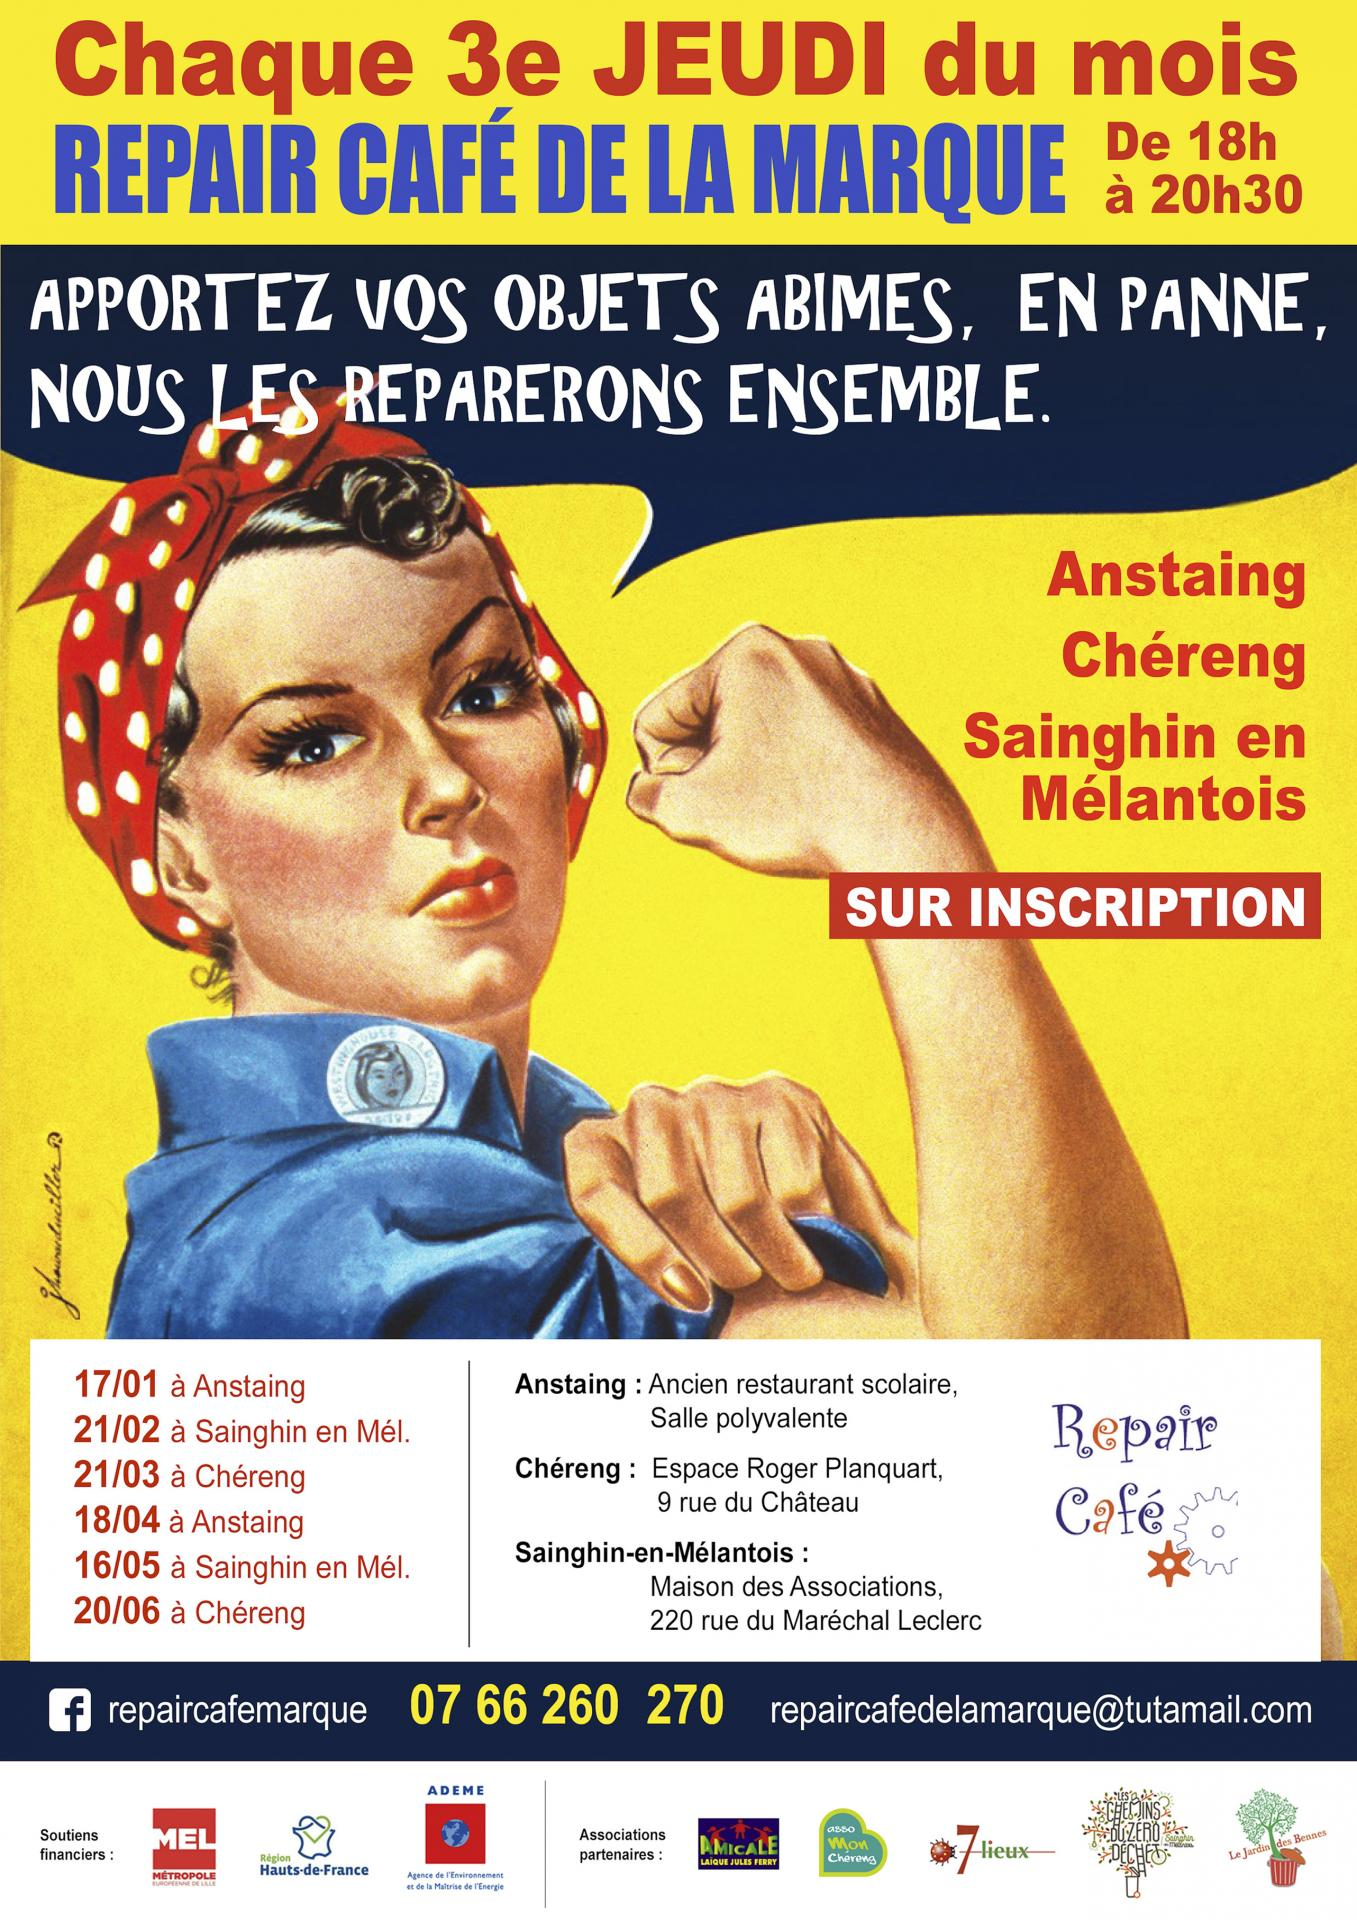 Repair cafe marque affiche web 2019